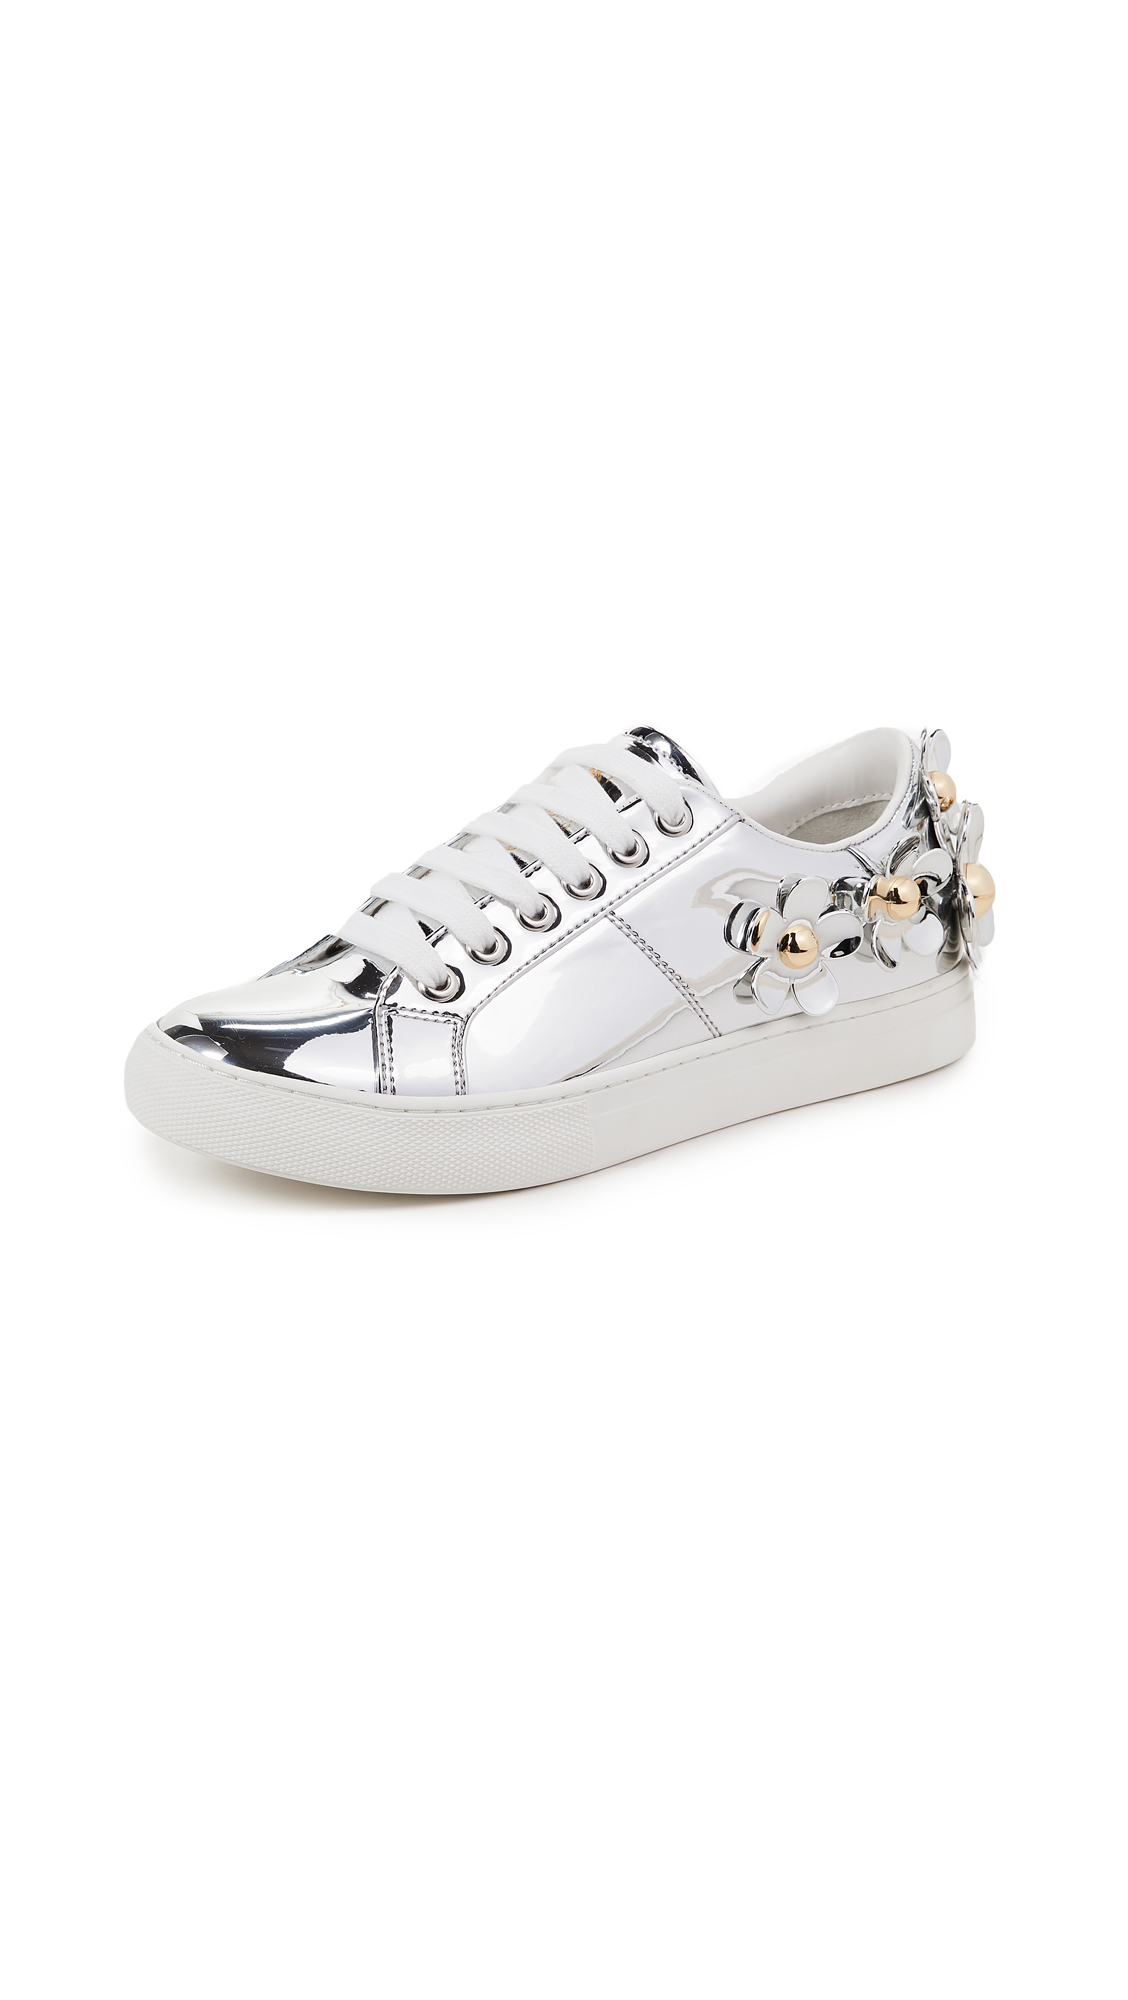 Marc Jacobs Daisy Sneakers In Silver